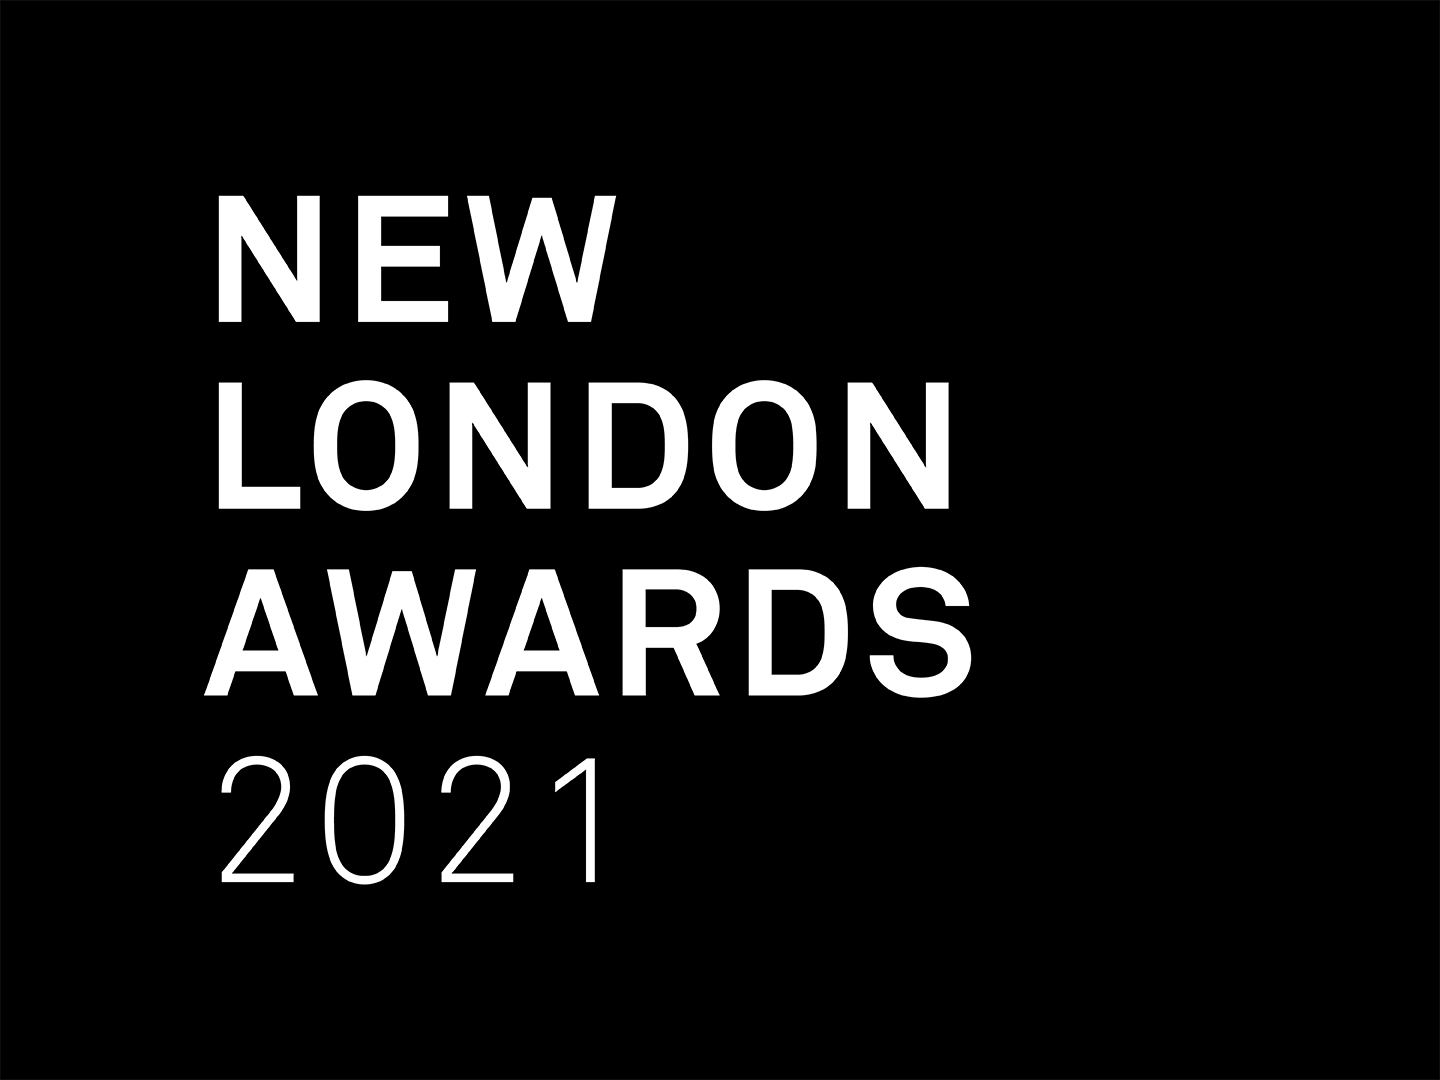 The 2021 Awards Programme